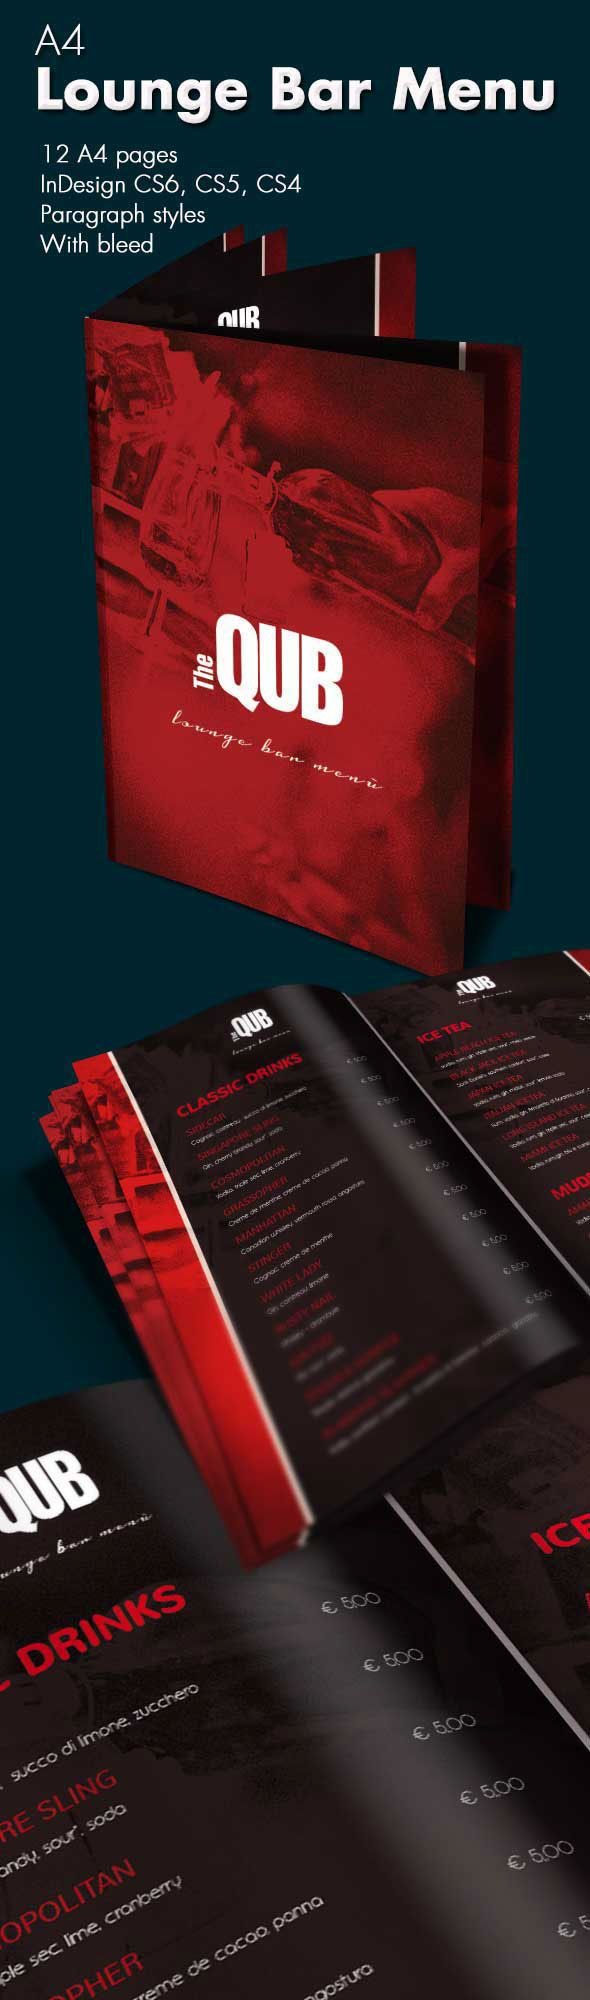 Lounge Bar Menu   This item is available for sale on Envato MarketPlace http://graphicriver.net/item/lounge-bar-menu/4449182